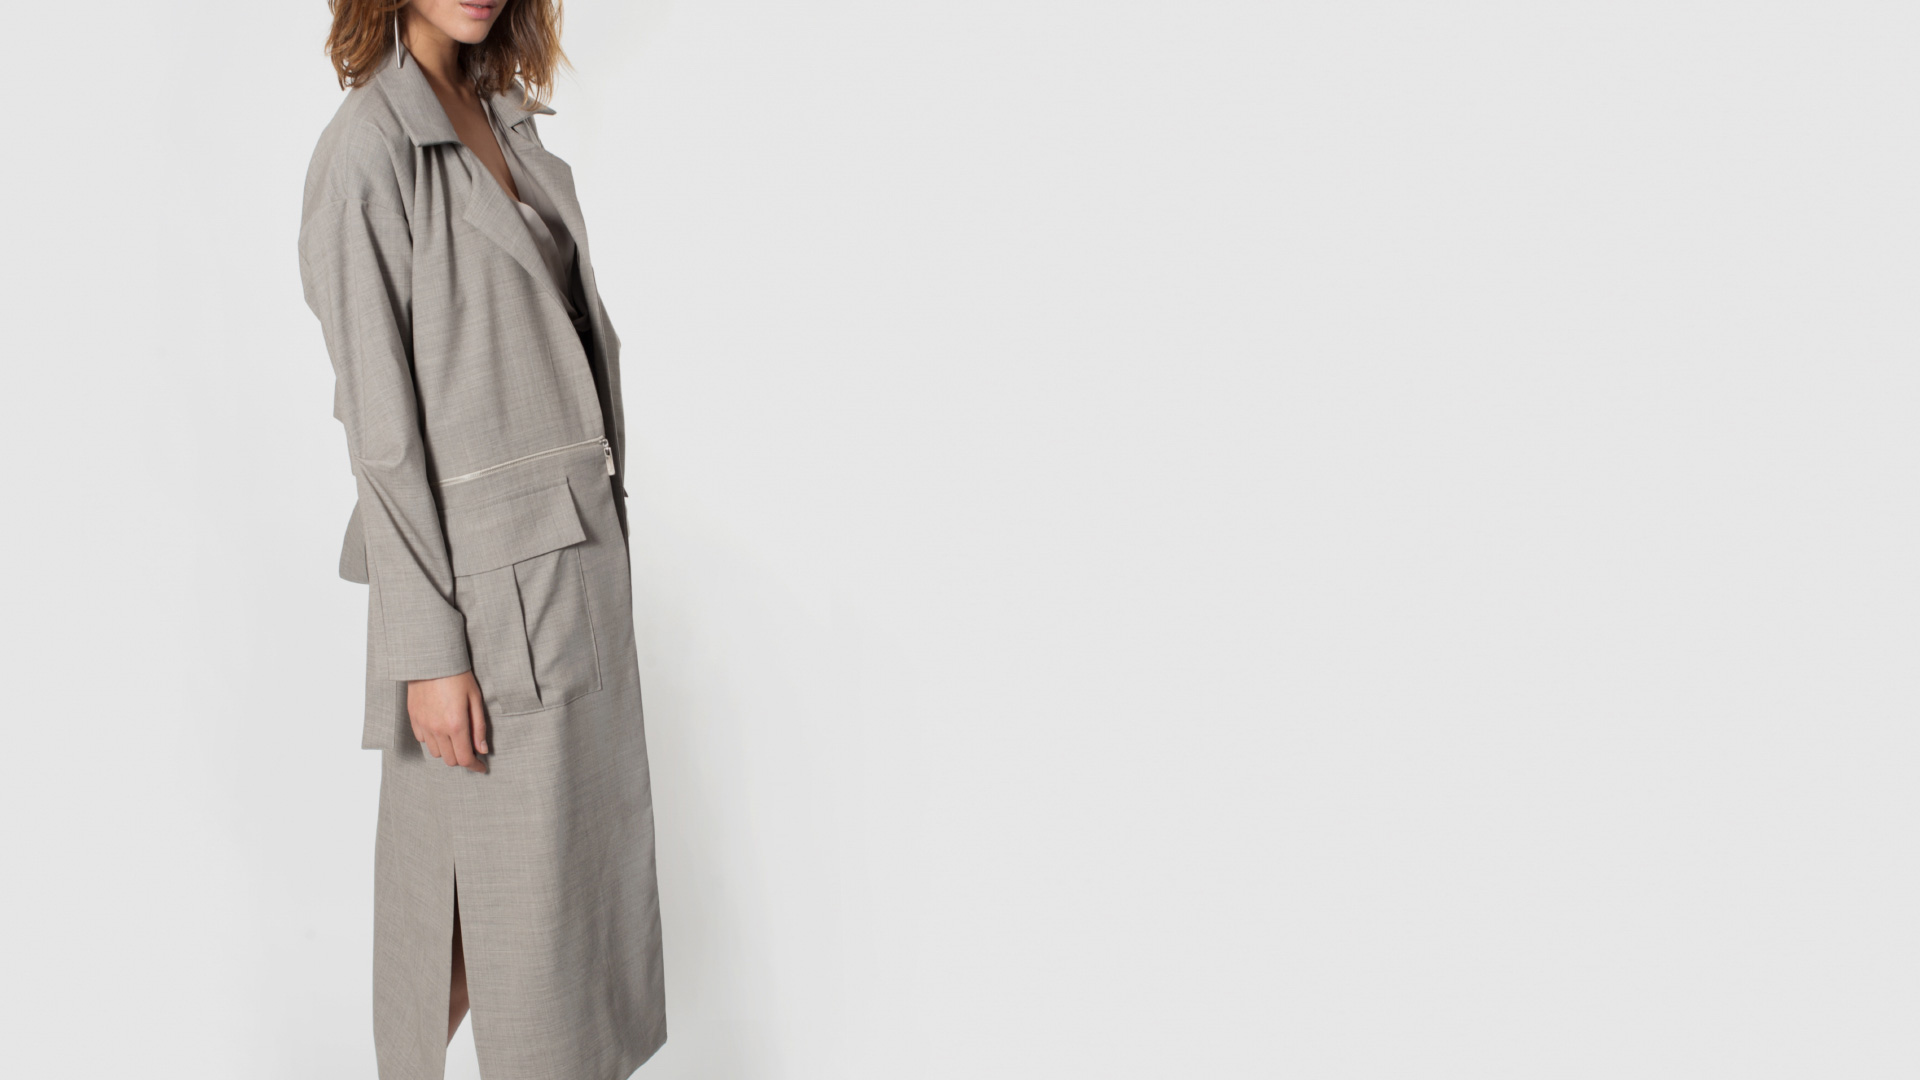 beige coat with pockets